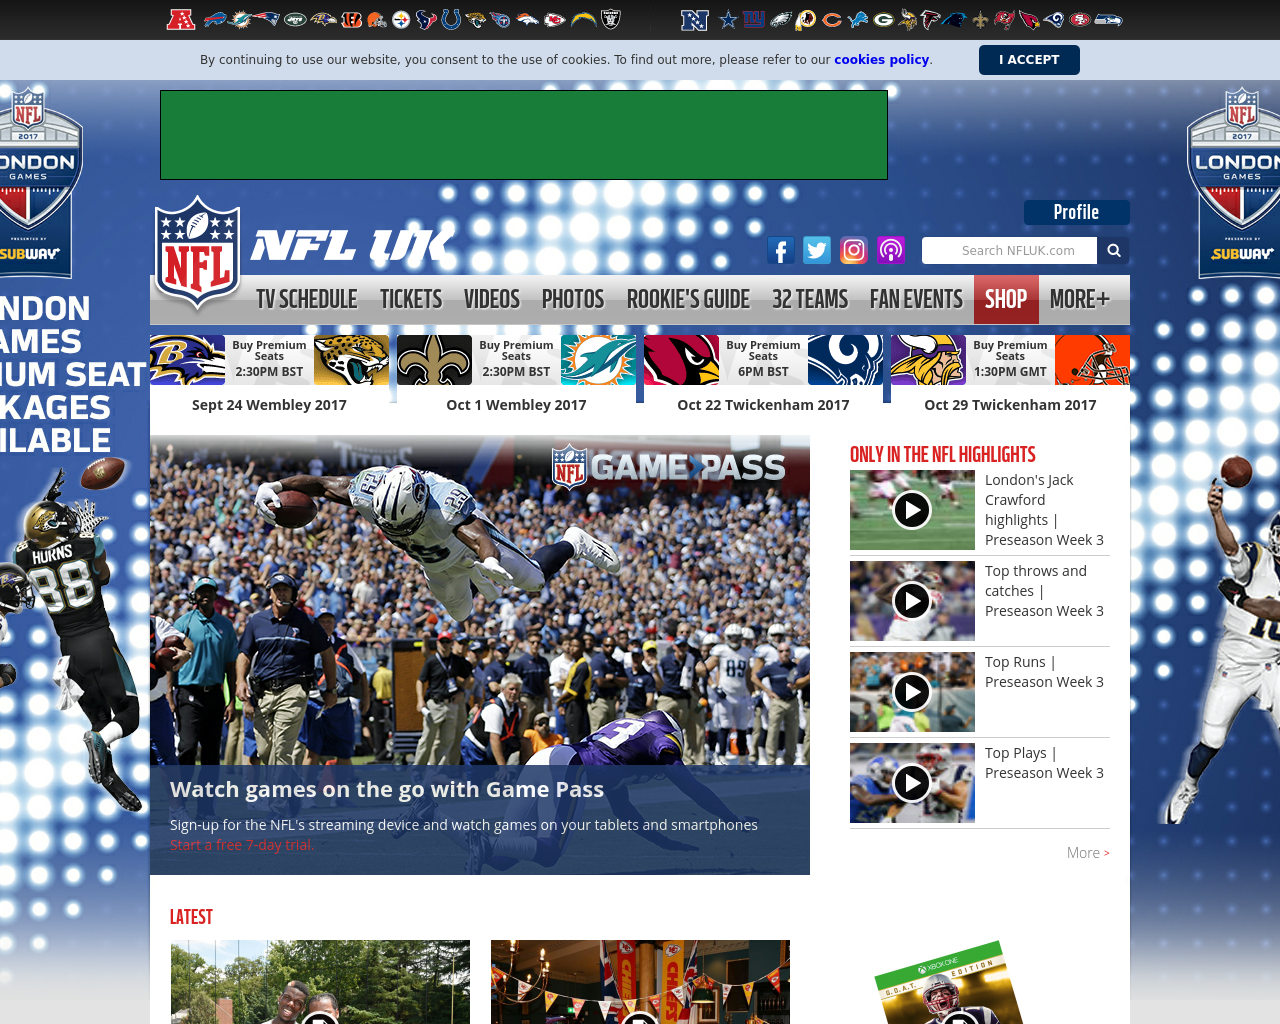 The-NFL-UK-Advertising-Reviews-Pricing